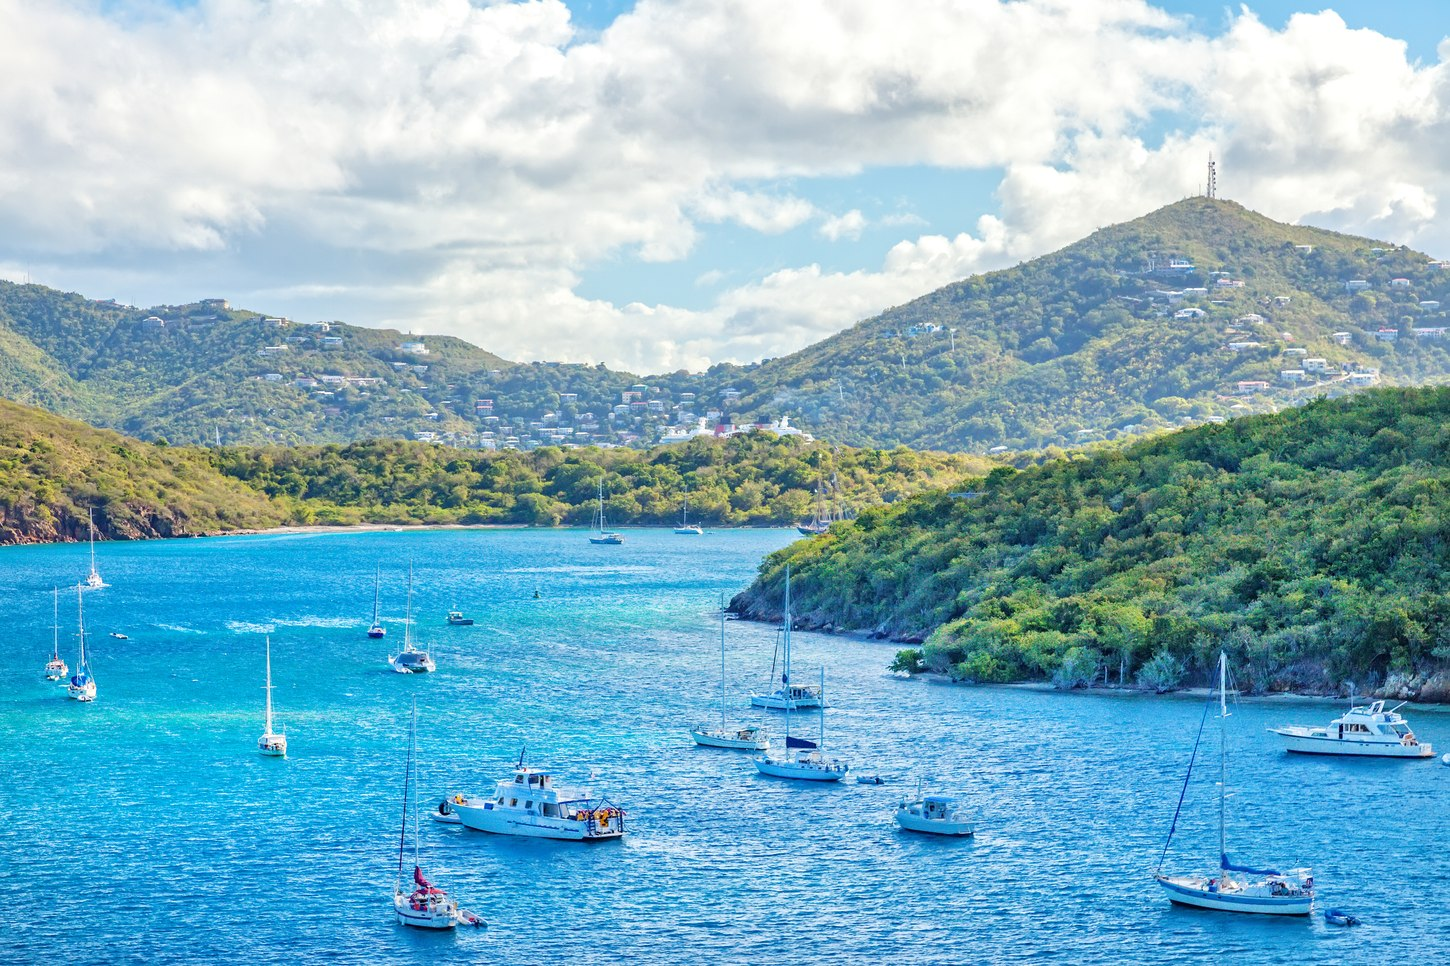 Things to see & do in Virgin Islands